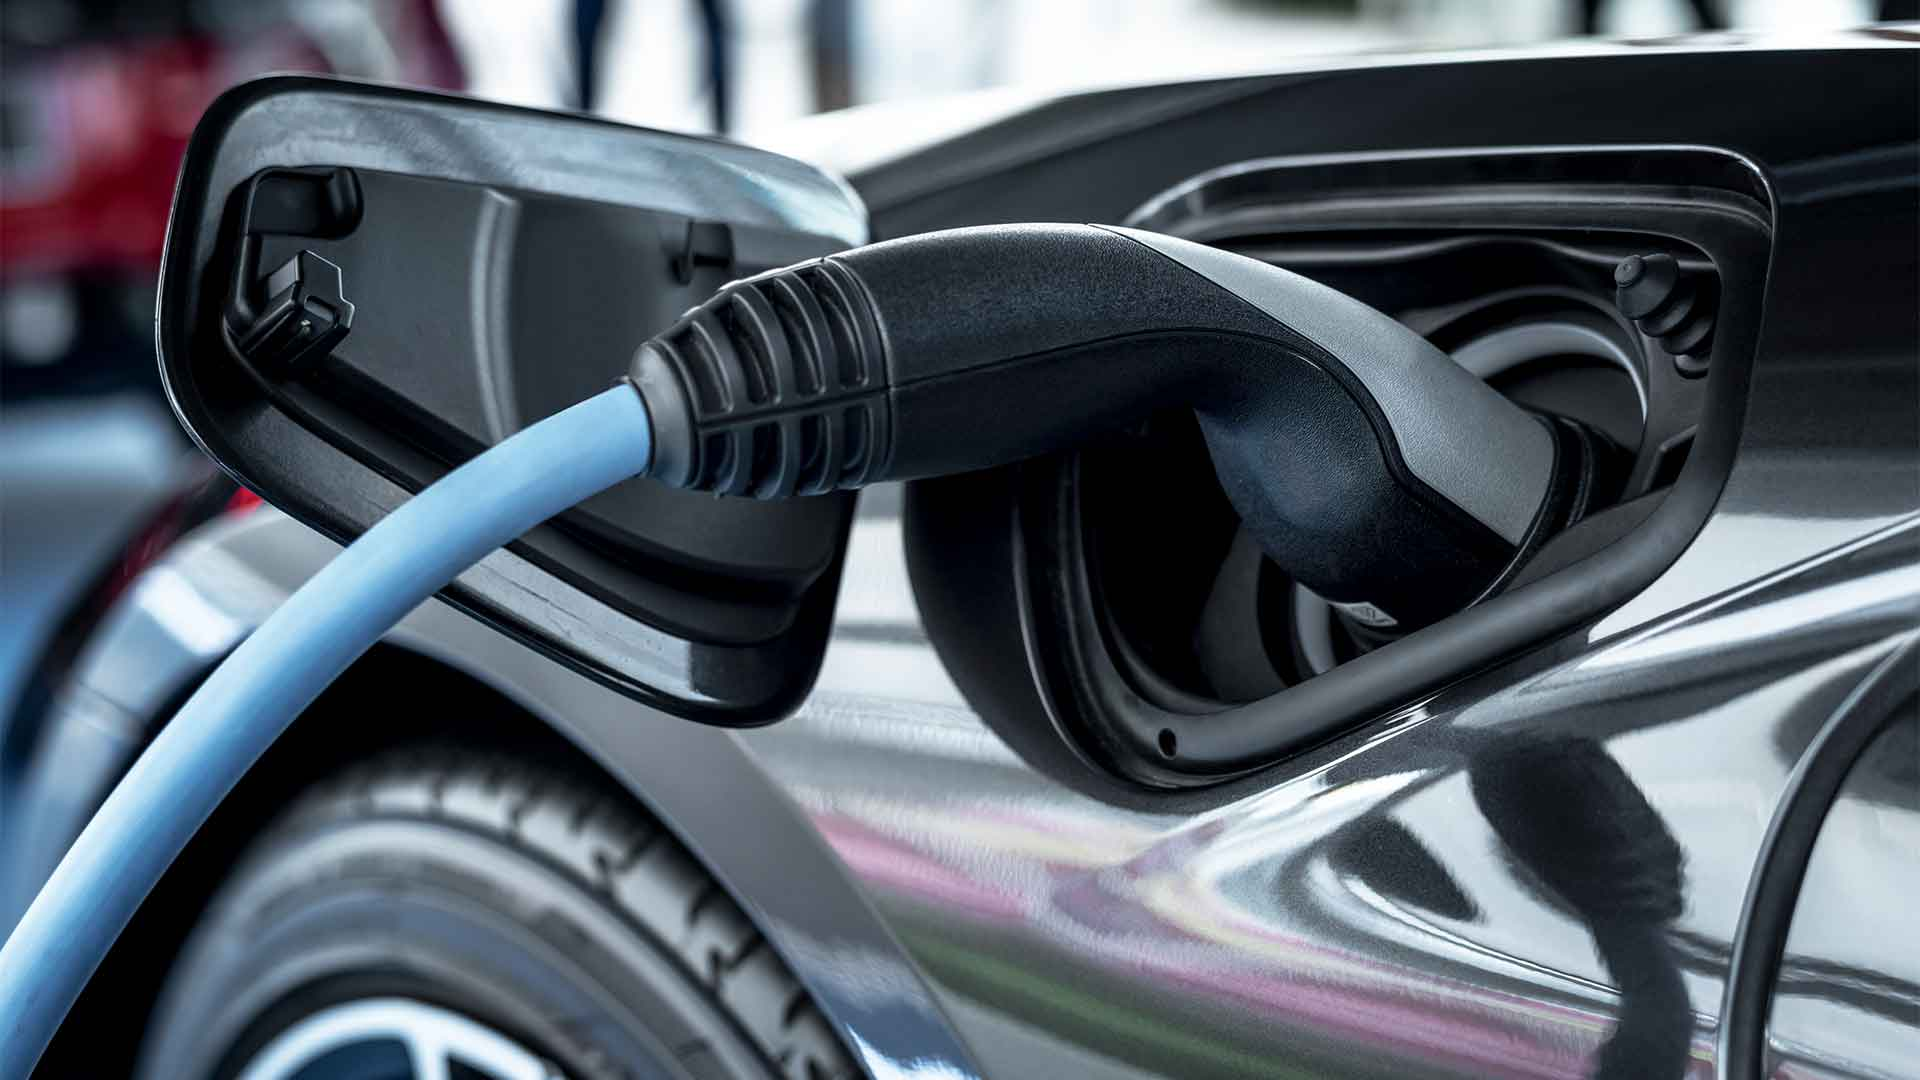 Demand for Key Metals like Boron in EV Production Rapidly Rising